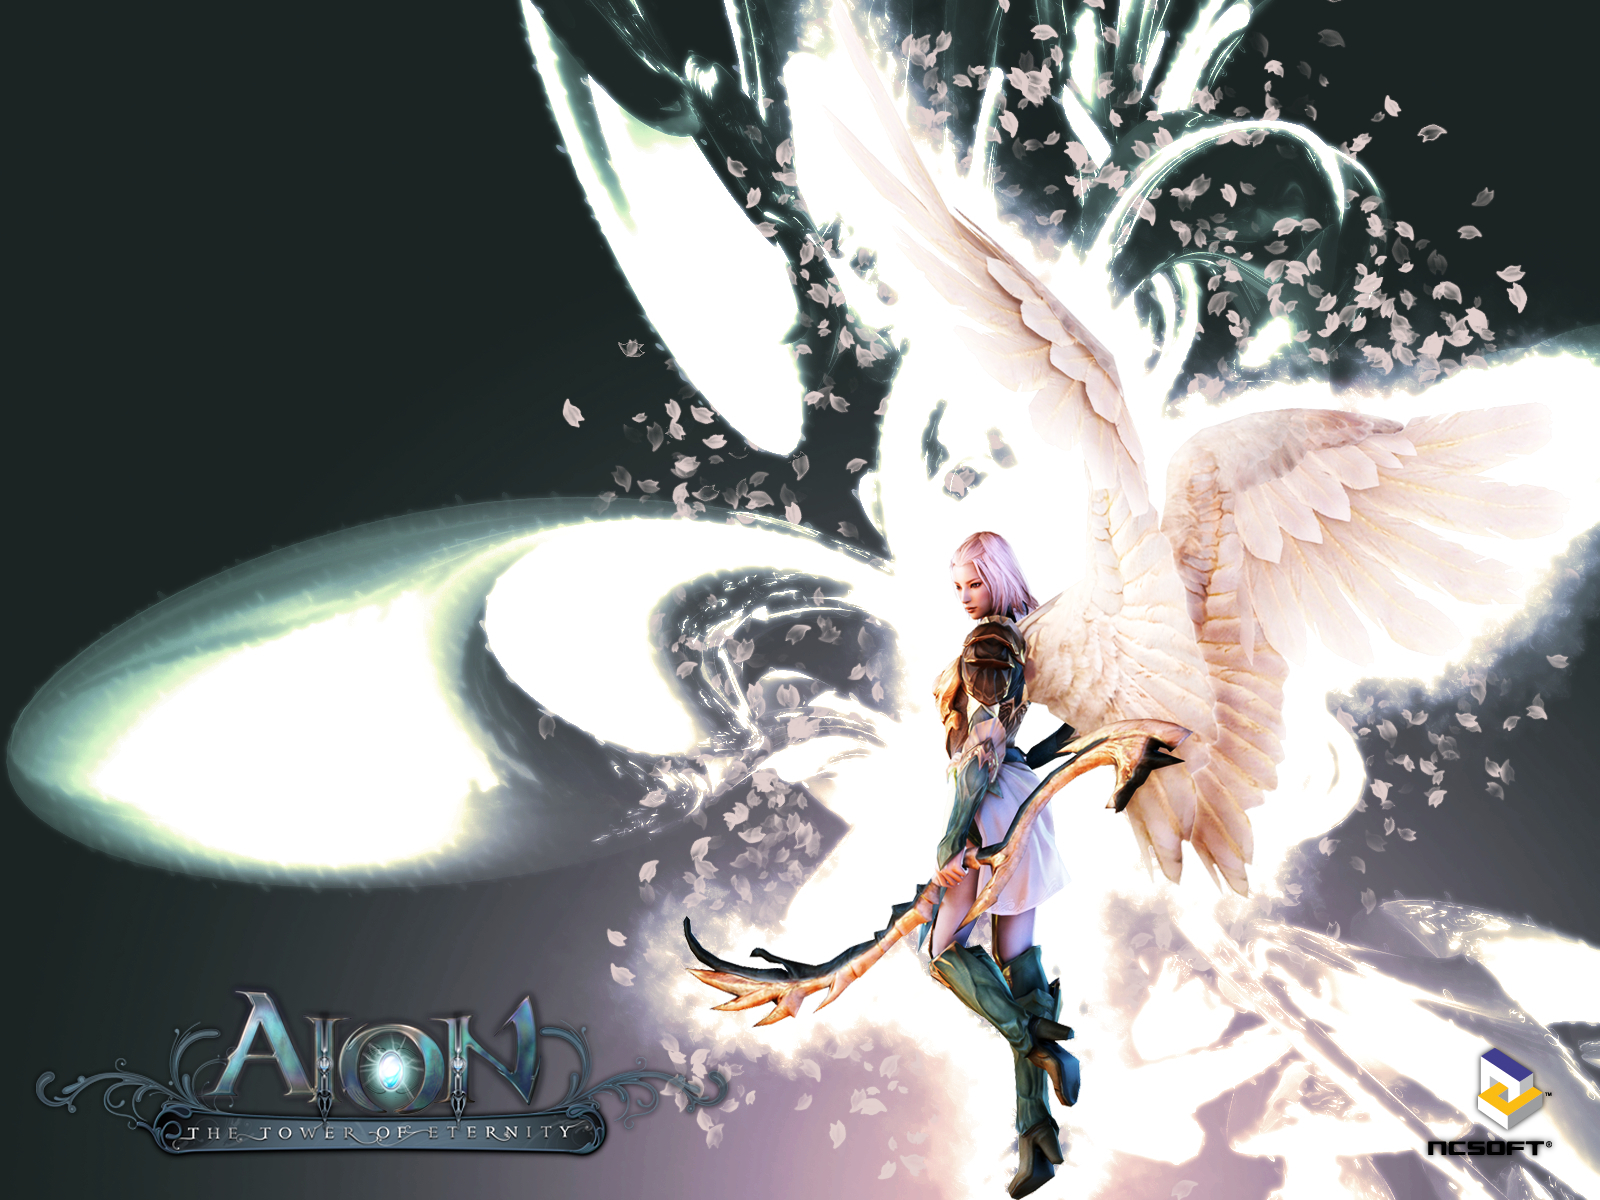 tower aion The of HD Wallpaper